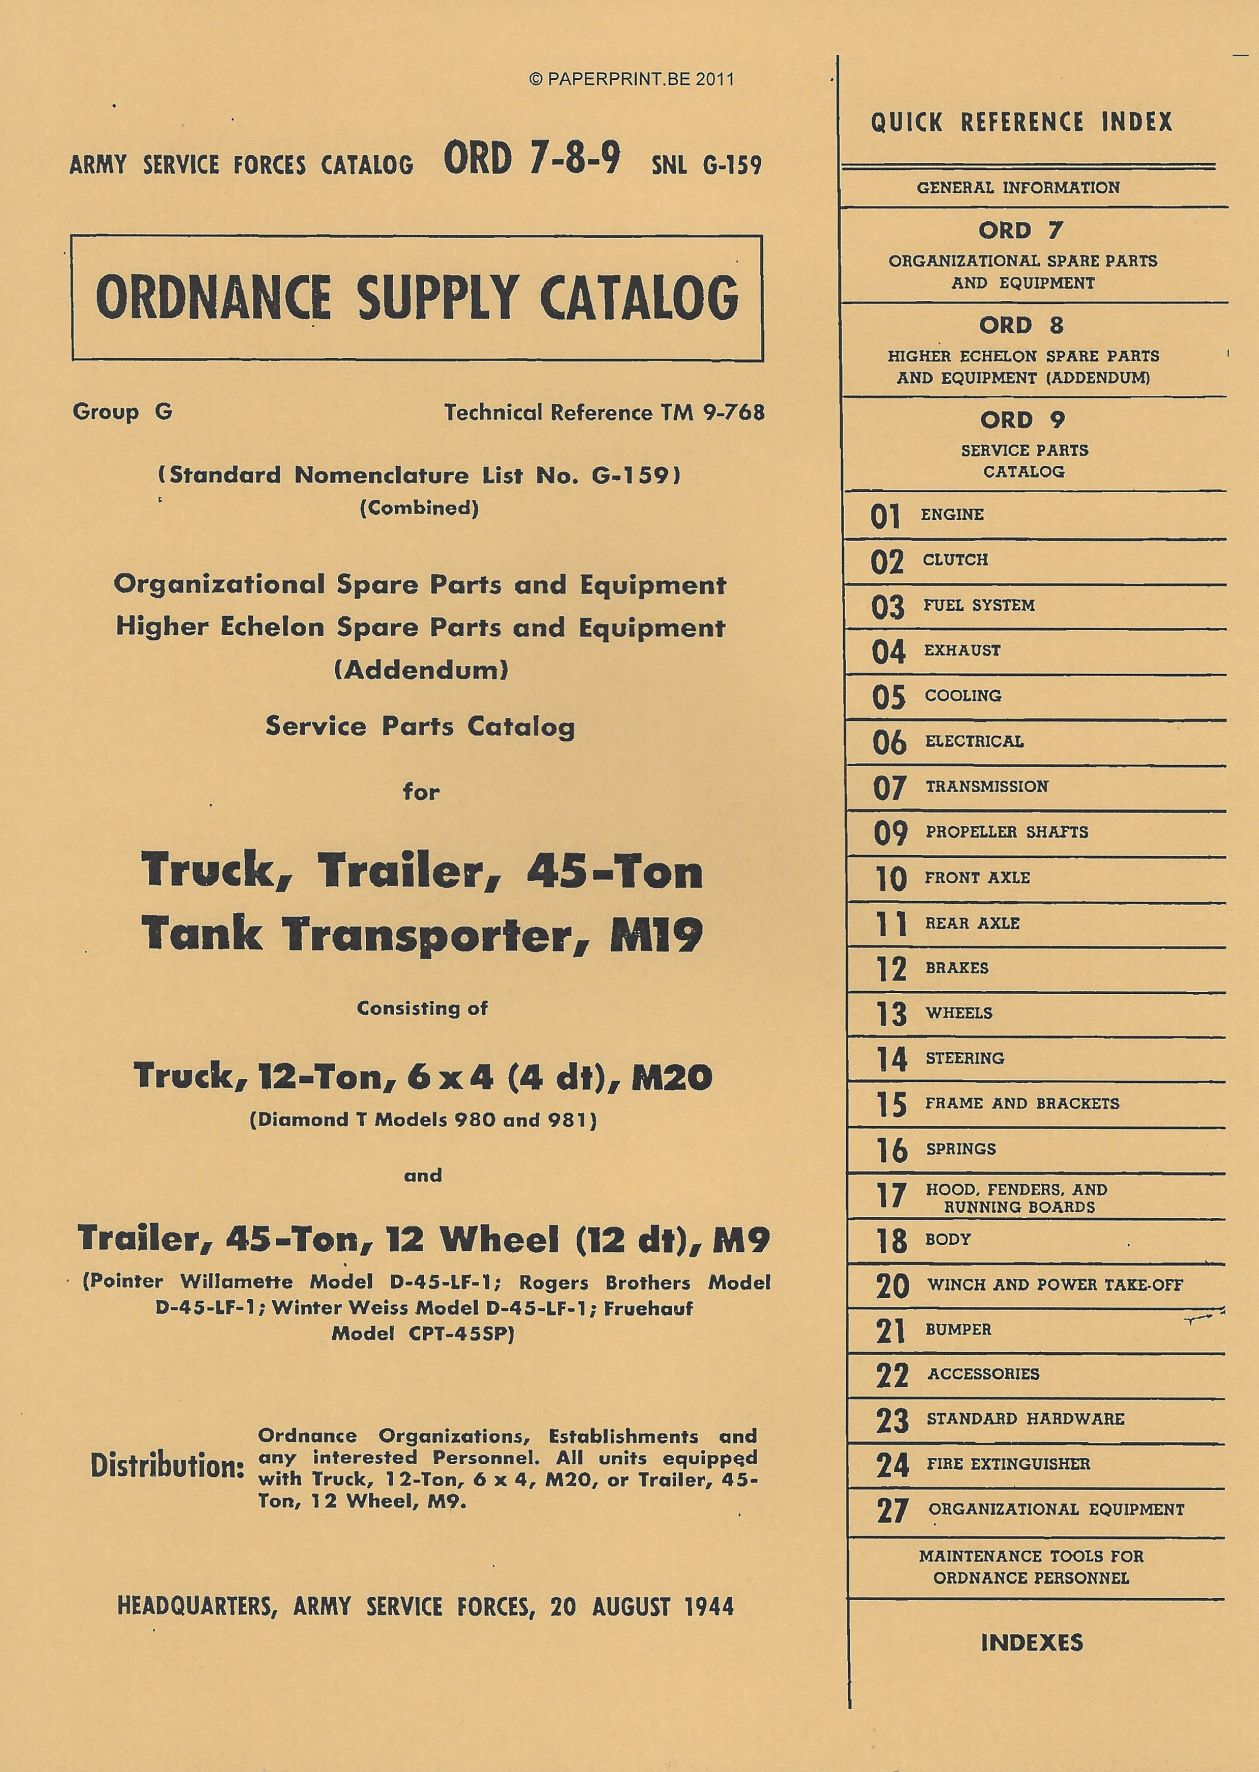 SNL G-159 US PARTS LIST FOR TRUCK, TRAILER, 45 TON, TANK TRANSPORTER, M19